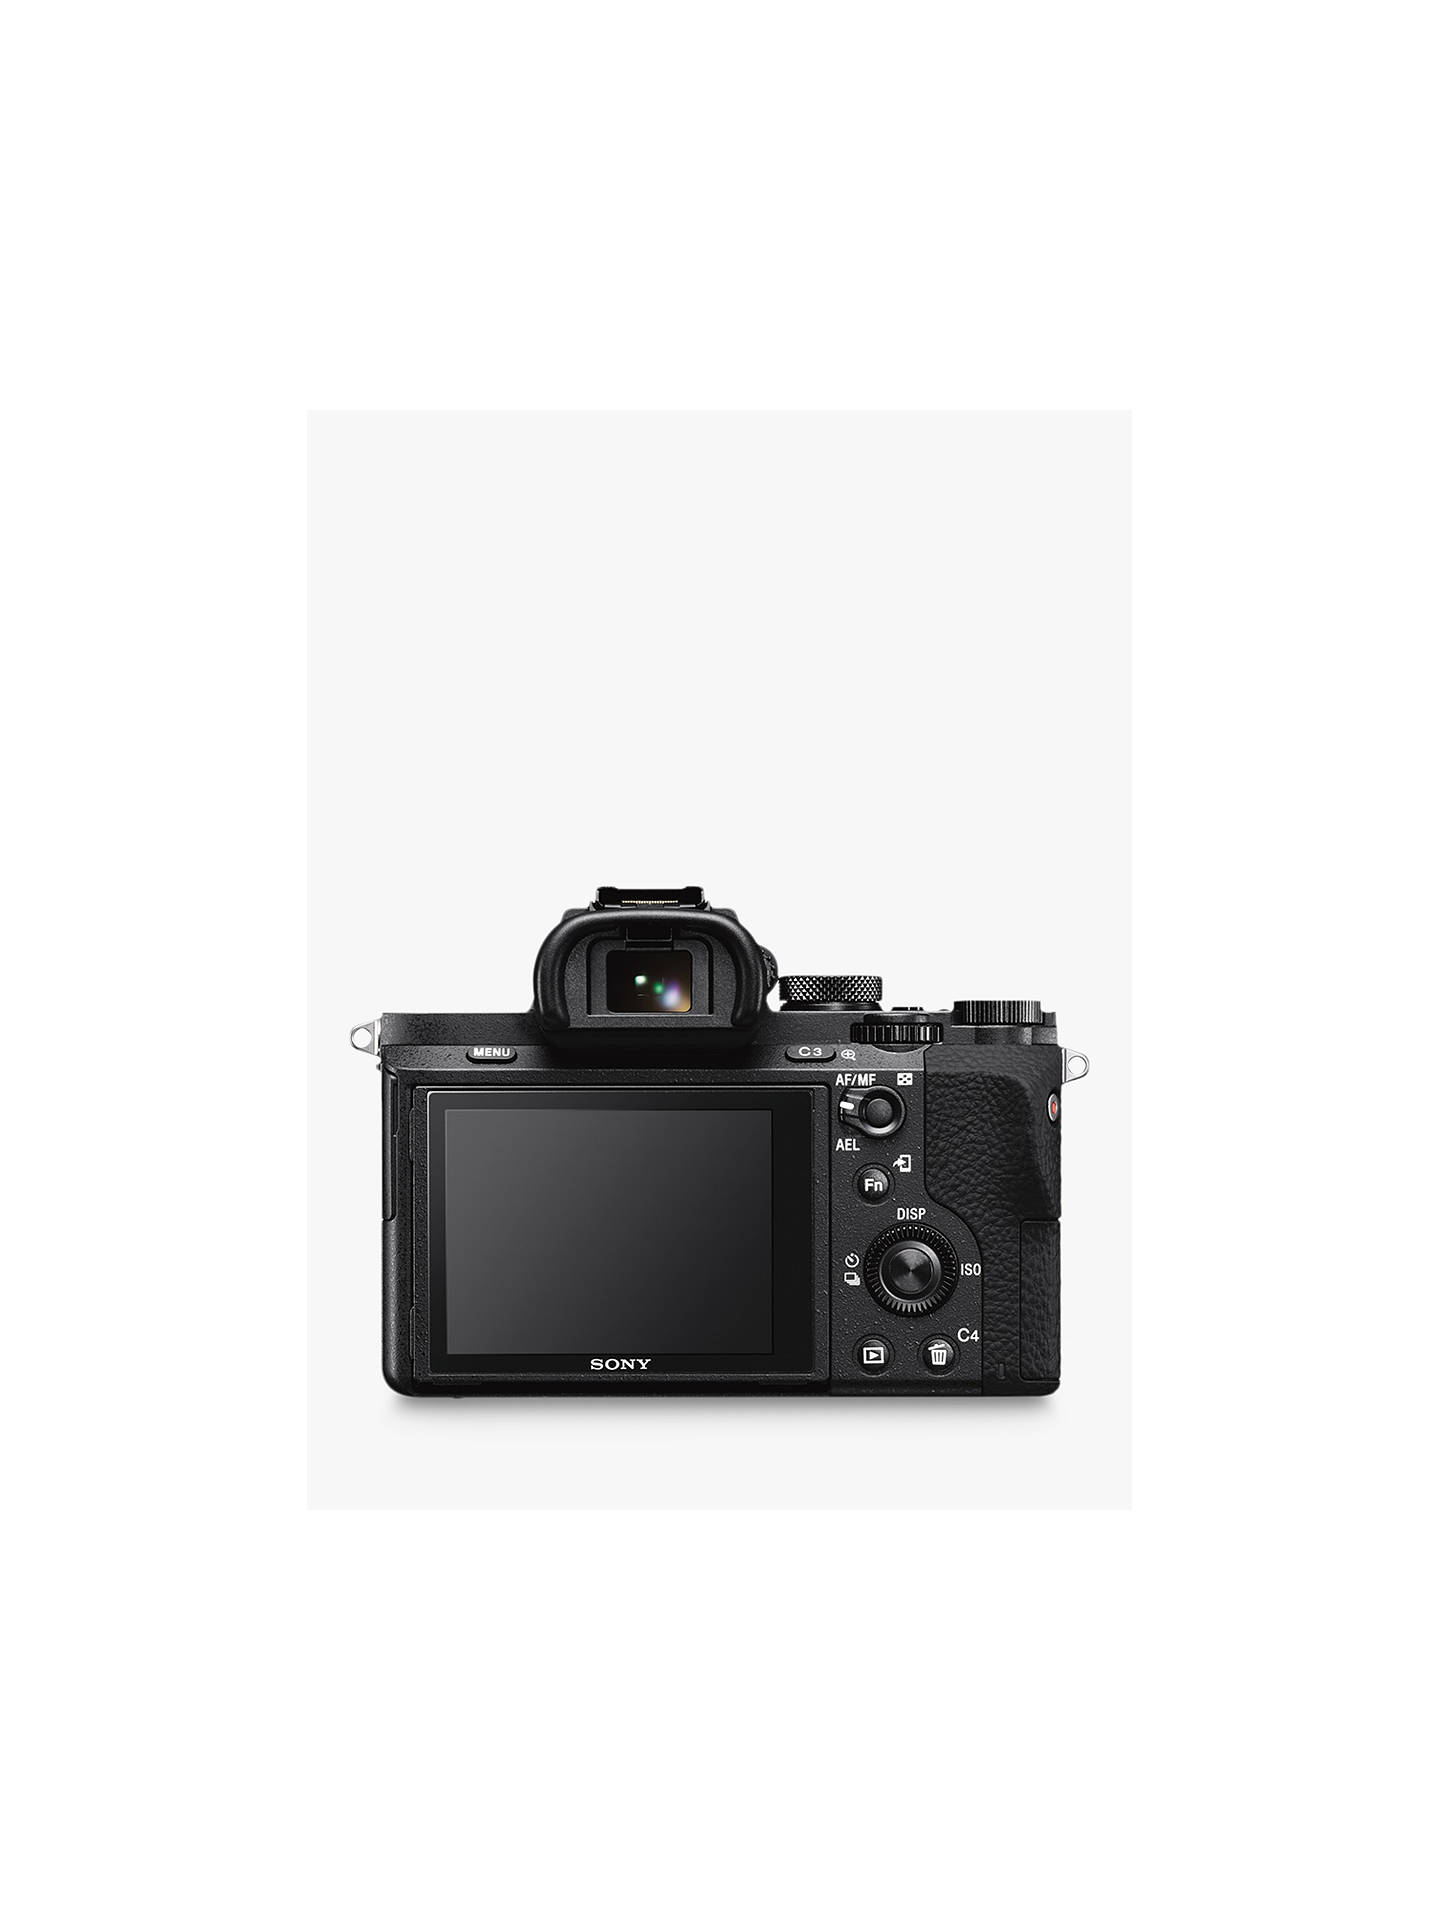 Sony a7 II (Alpha ILCE-7M2) Compact System Camera With HD 1080p, 24 3MP,  Wi-Fi, NFC, OLED EVF, 5-Axis Image Stabiliser & 3